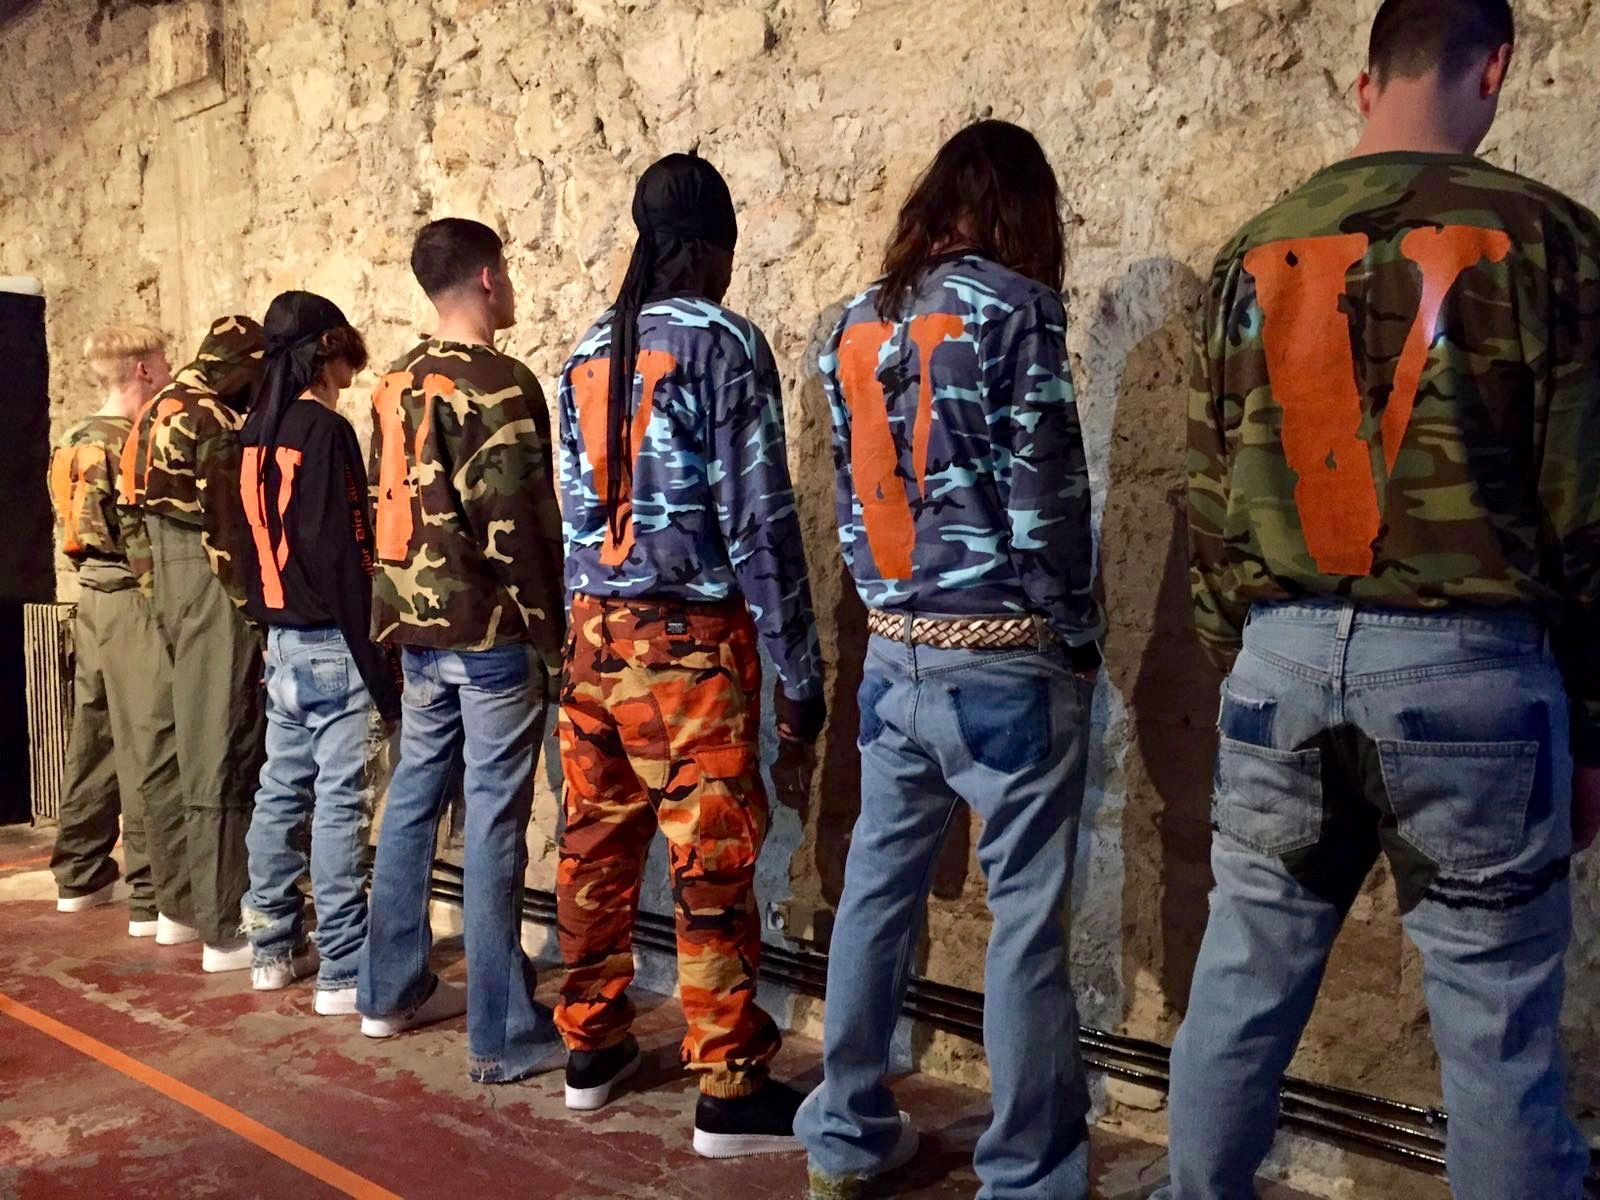 VLONE CLOTHING FW 16 COLLECTION IS AVAILABLE AND IN STOCK